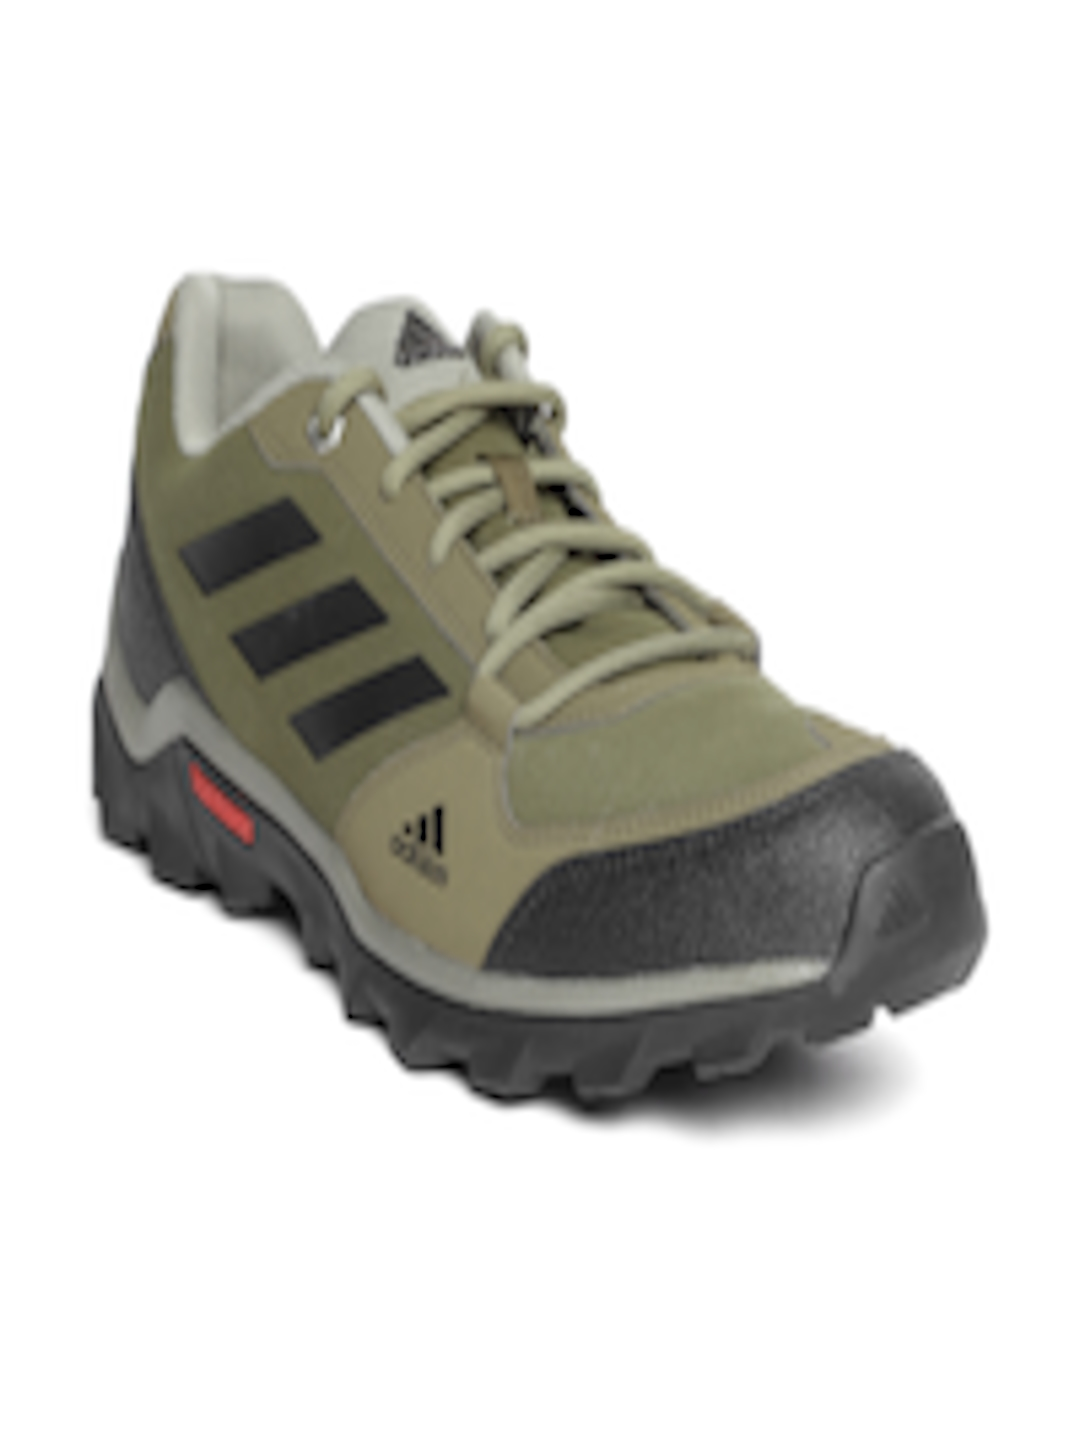 853e1269e0abb Buy Adidas Men Olive Green RIGI Outdoor Shoes - Sports Shoes for Men  6841952